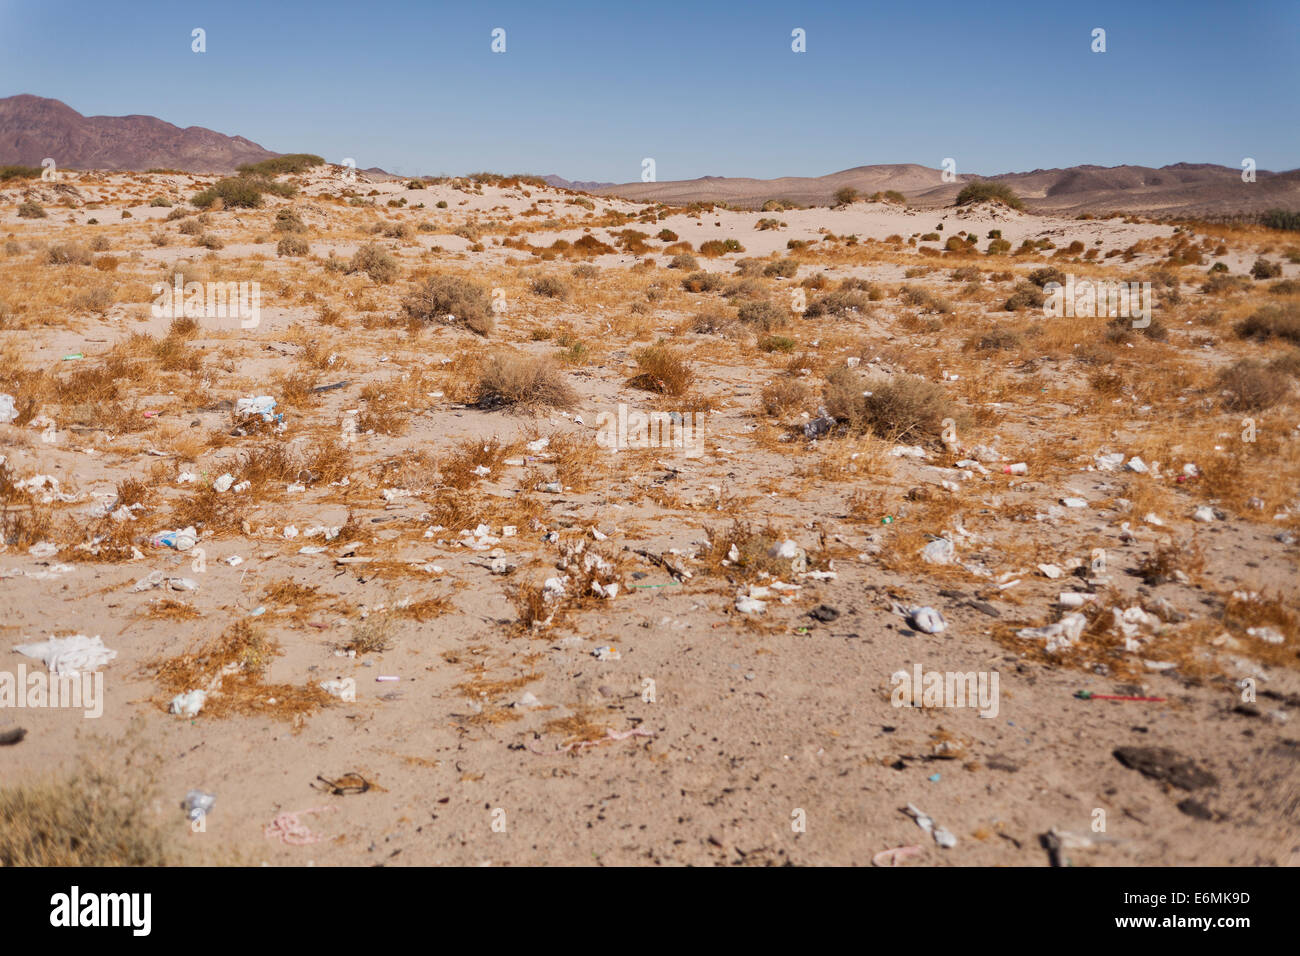 Litter along American Southwest desert  highway - Mojave desert, California USA - Stock Image